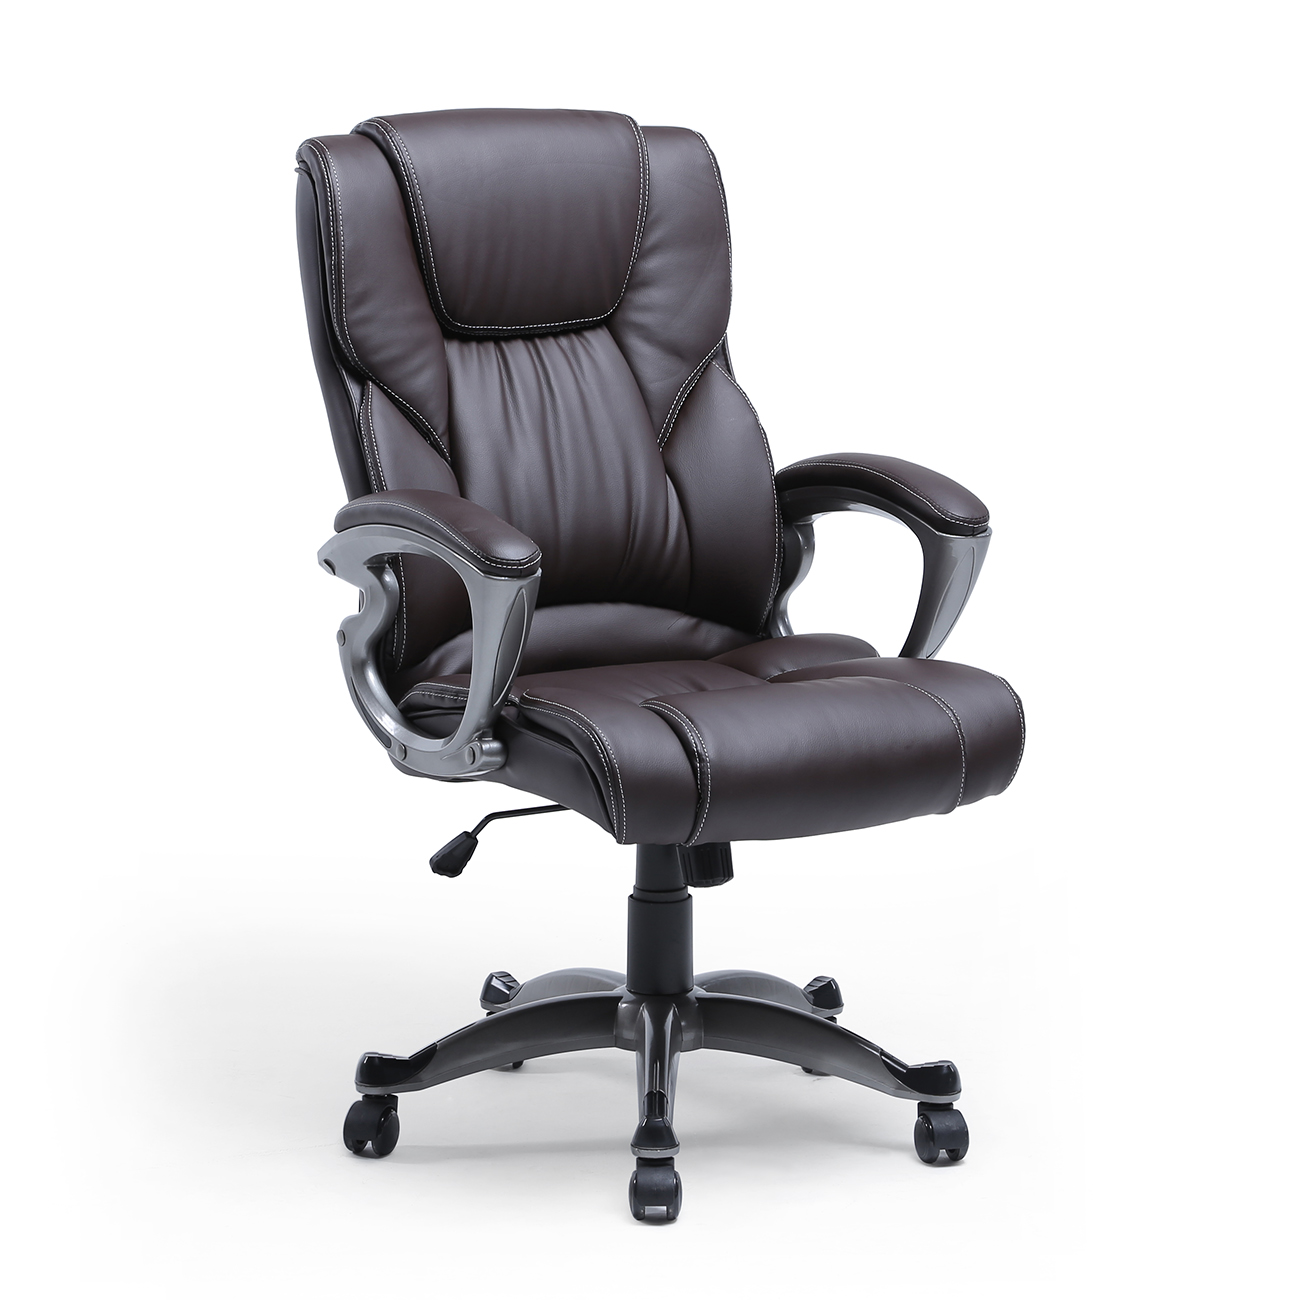 luxury high brown pu leather executive office chair desk task computer boss. Black Bedroom Furniture Sets. Home Design Ideas